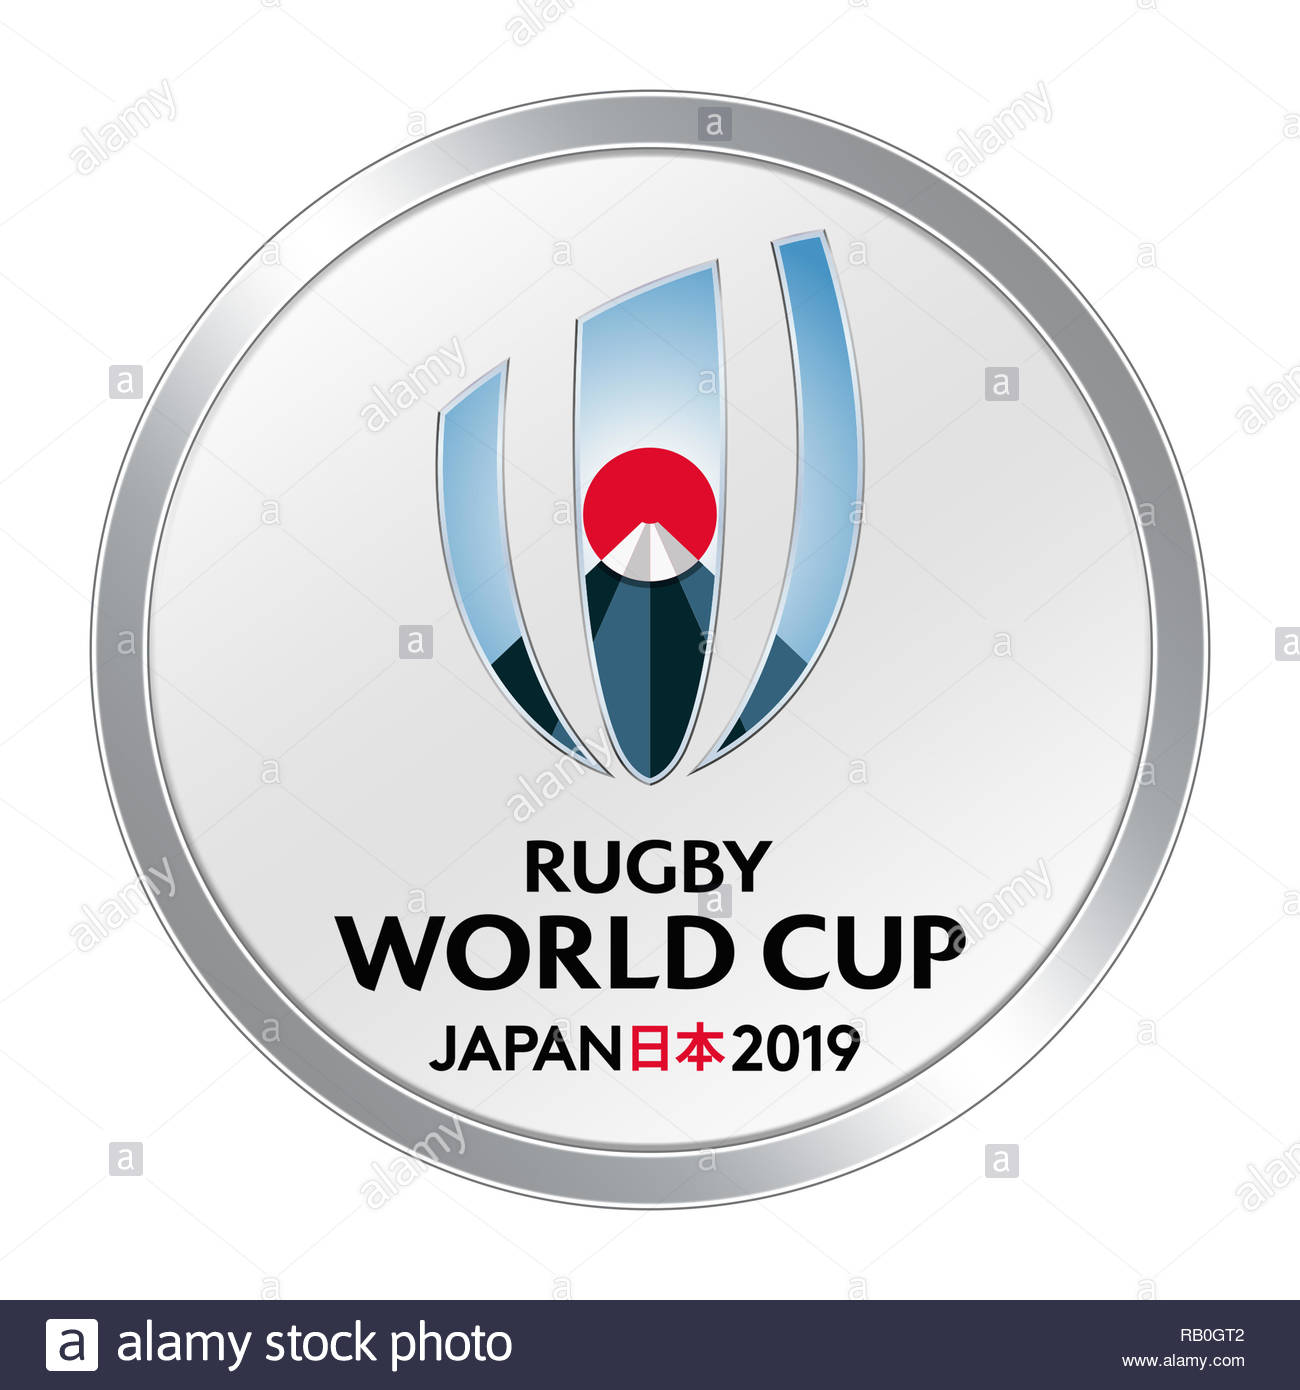 Rugby World Cup logo icon - Stock Image